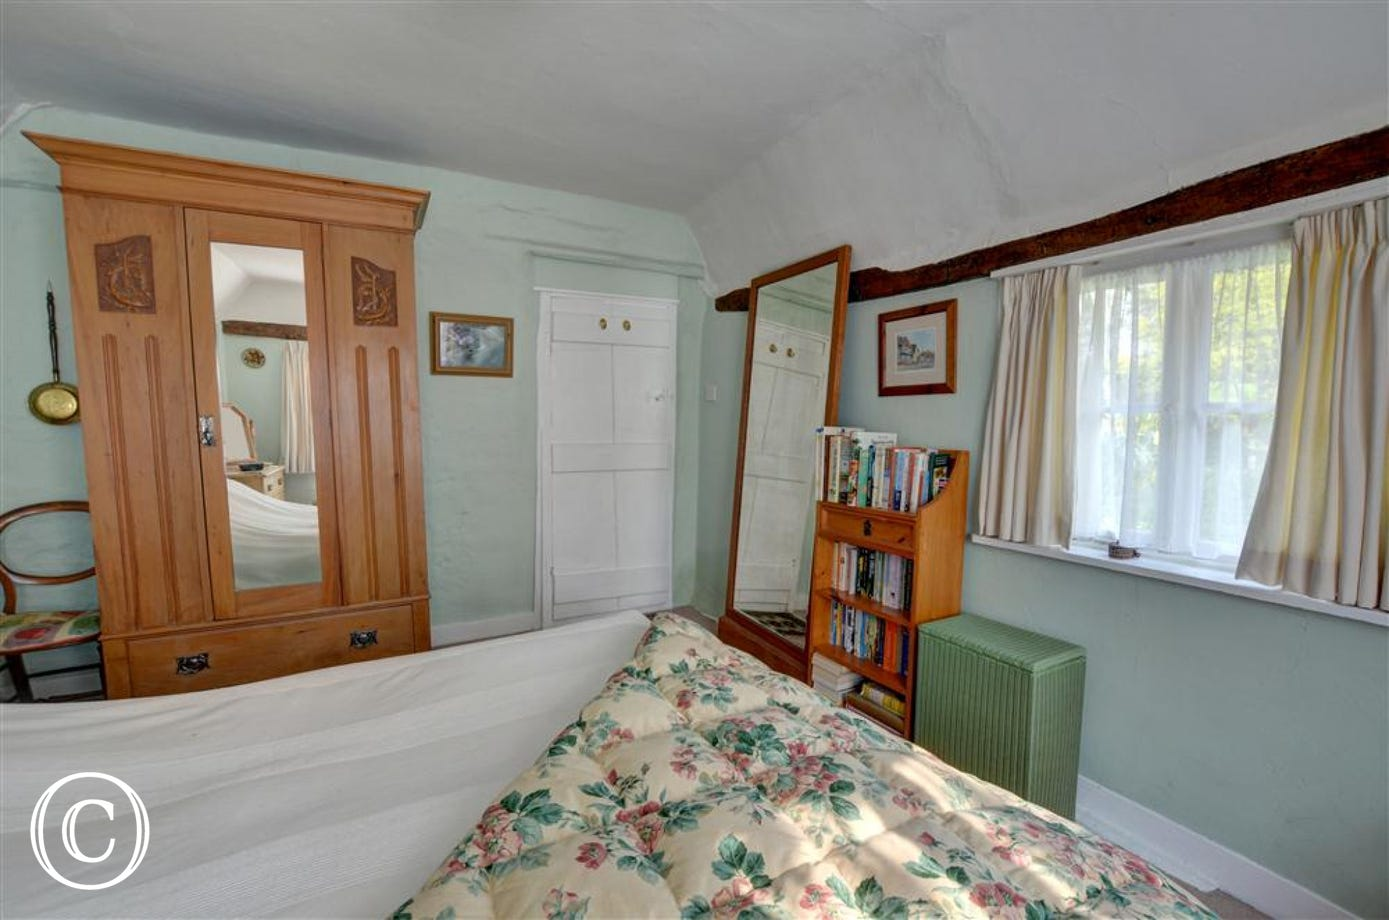 This main double bedroom has two windows with pretty views of the garden and this double bed to sink down into after a day in the generous garden.